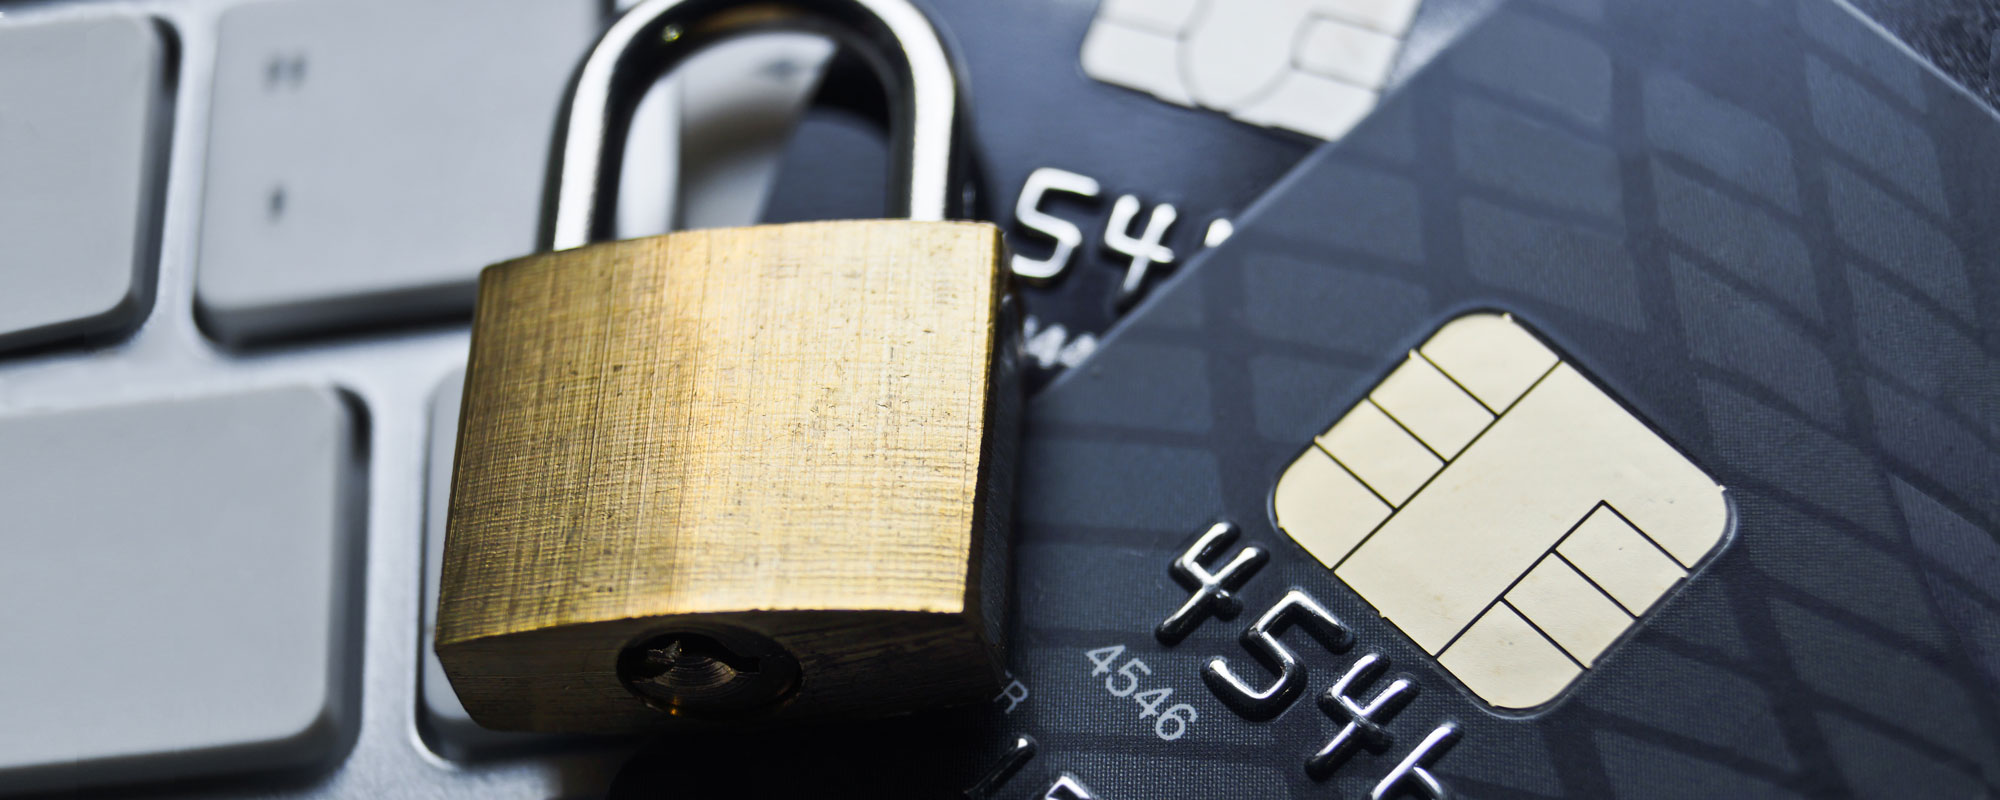 secure-payment-main